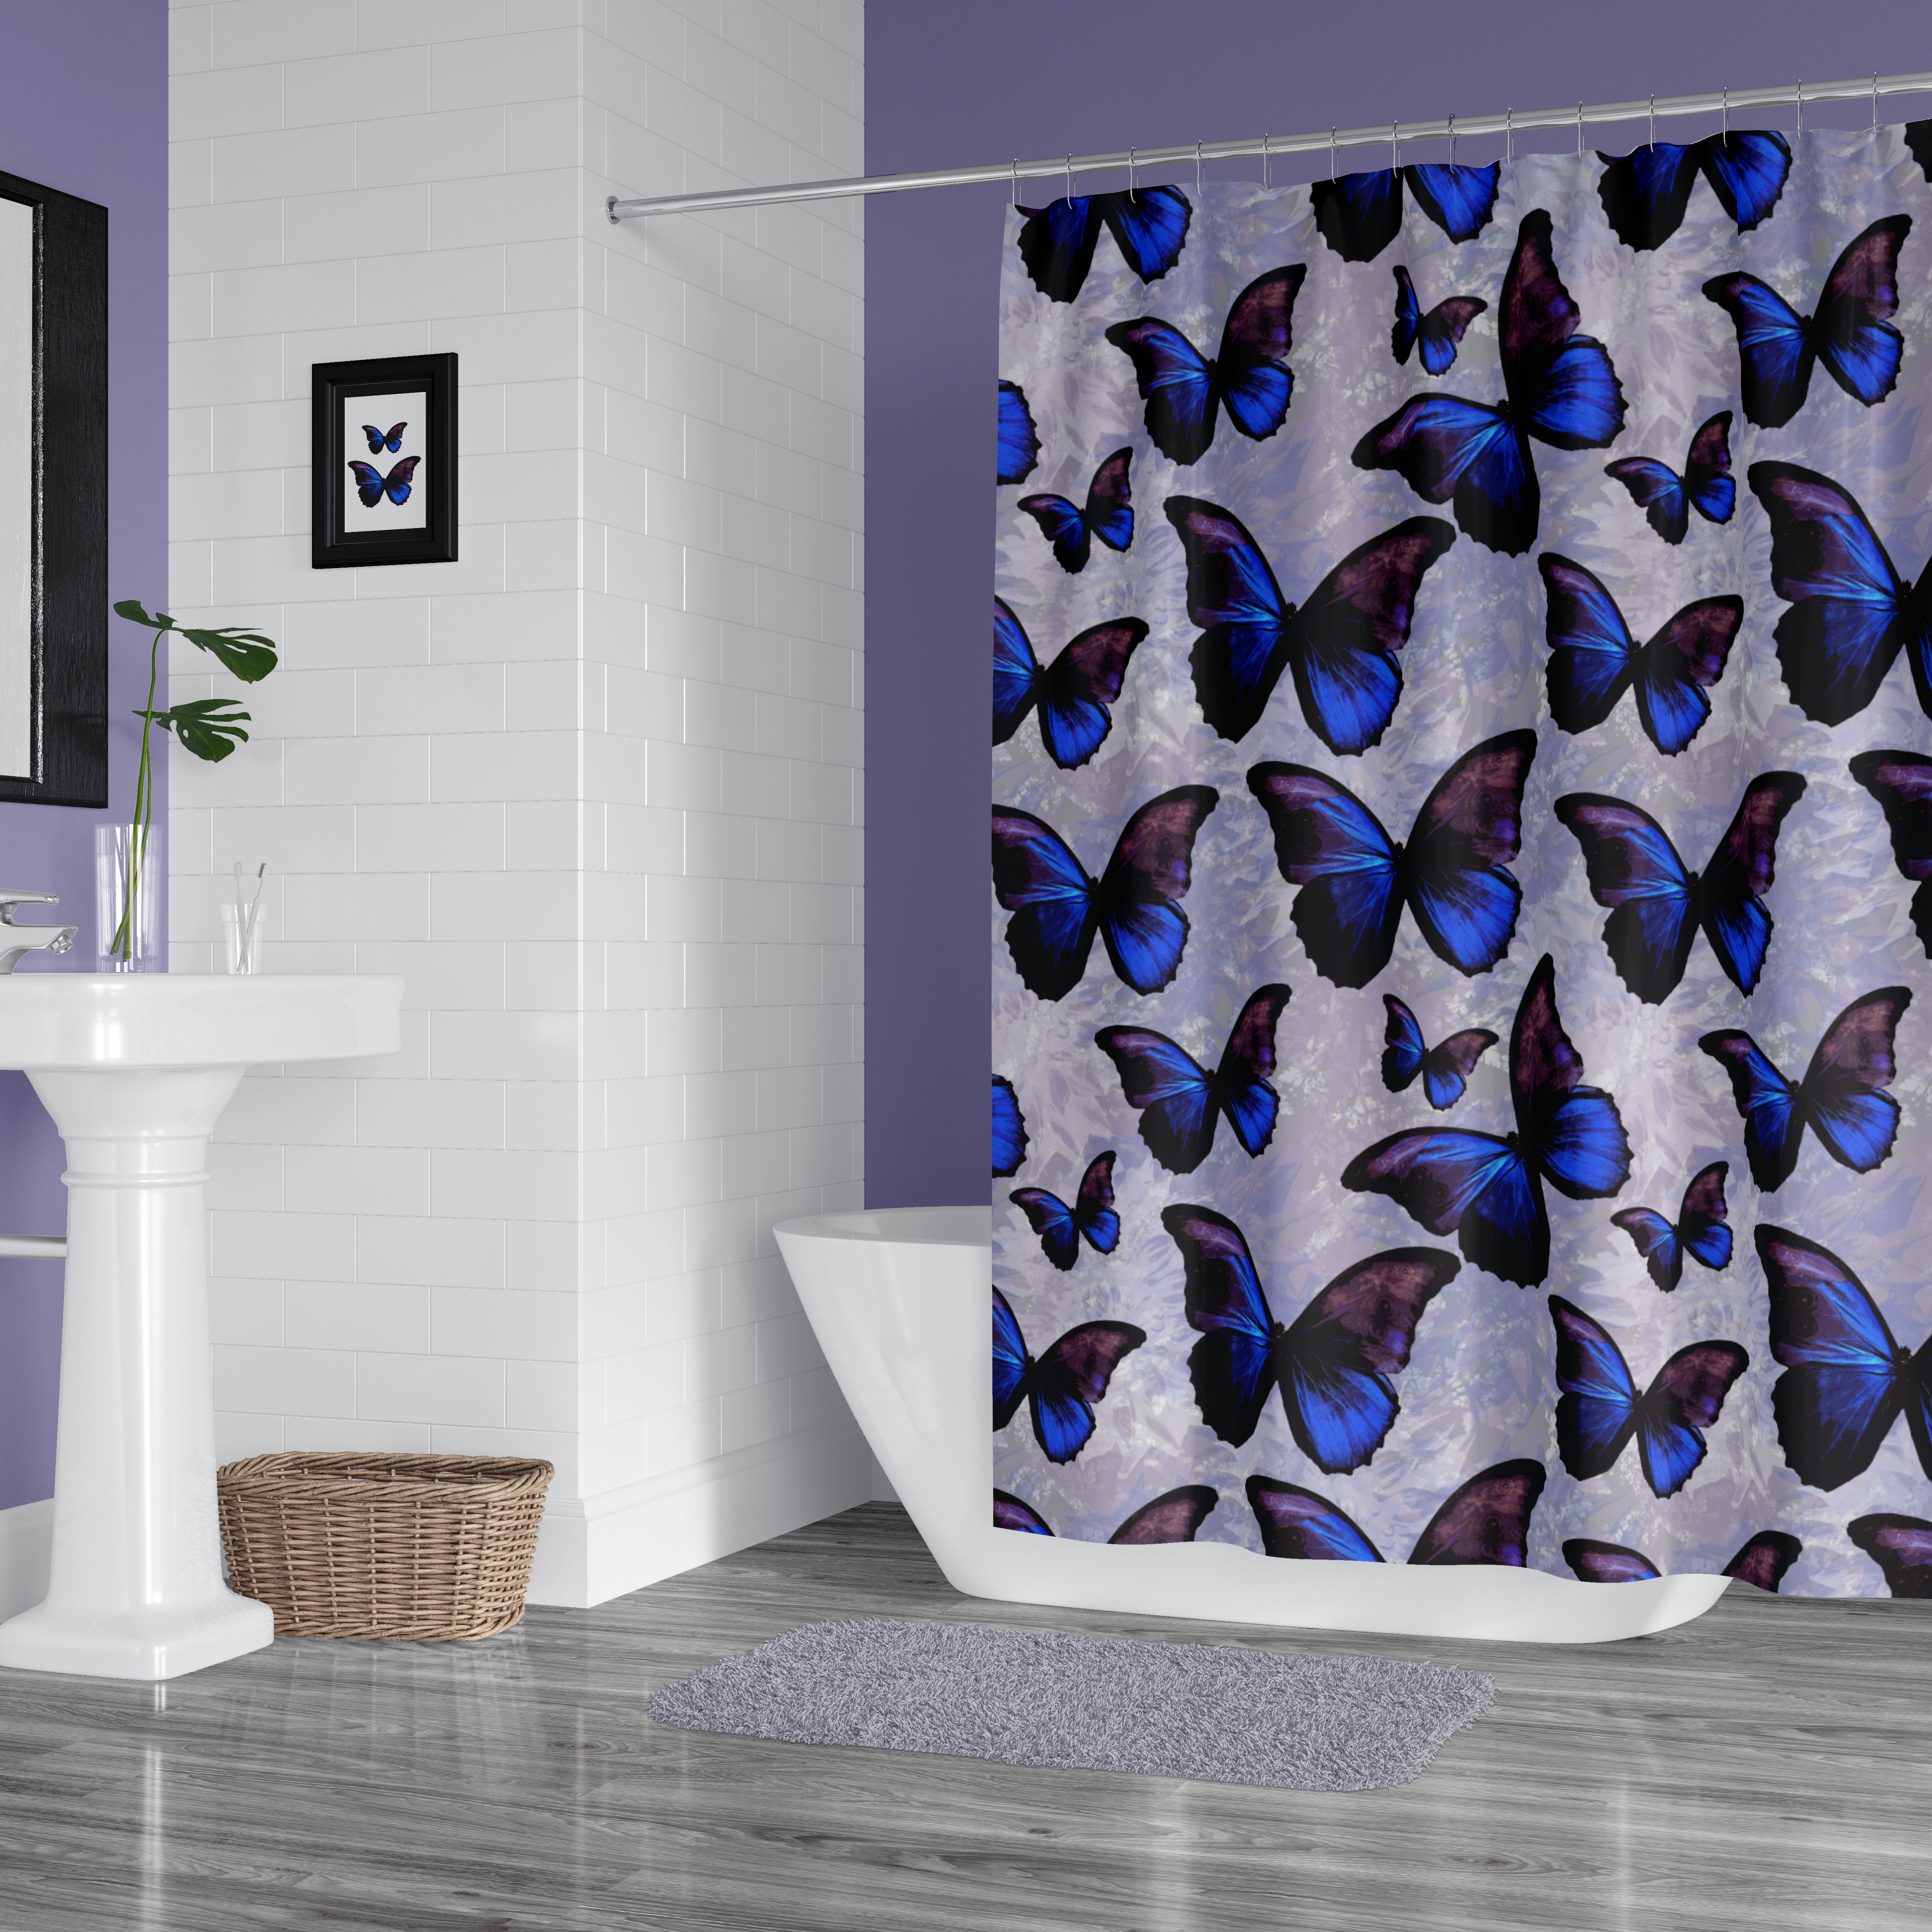 Purple And Blue Morpho Butterfly Shower Curtain Butterfly Shower Curtain Purple Bathroom Decor Purple Bathrooms